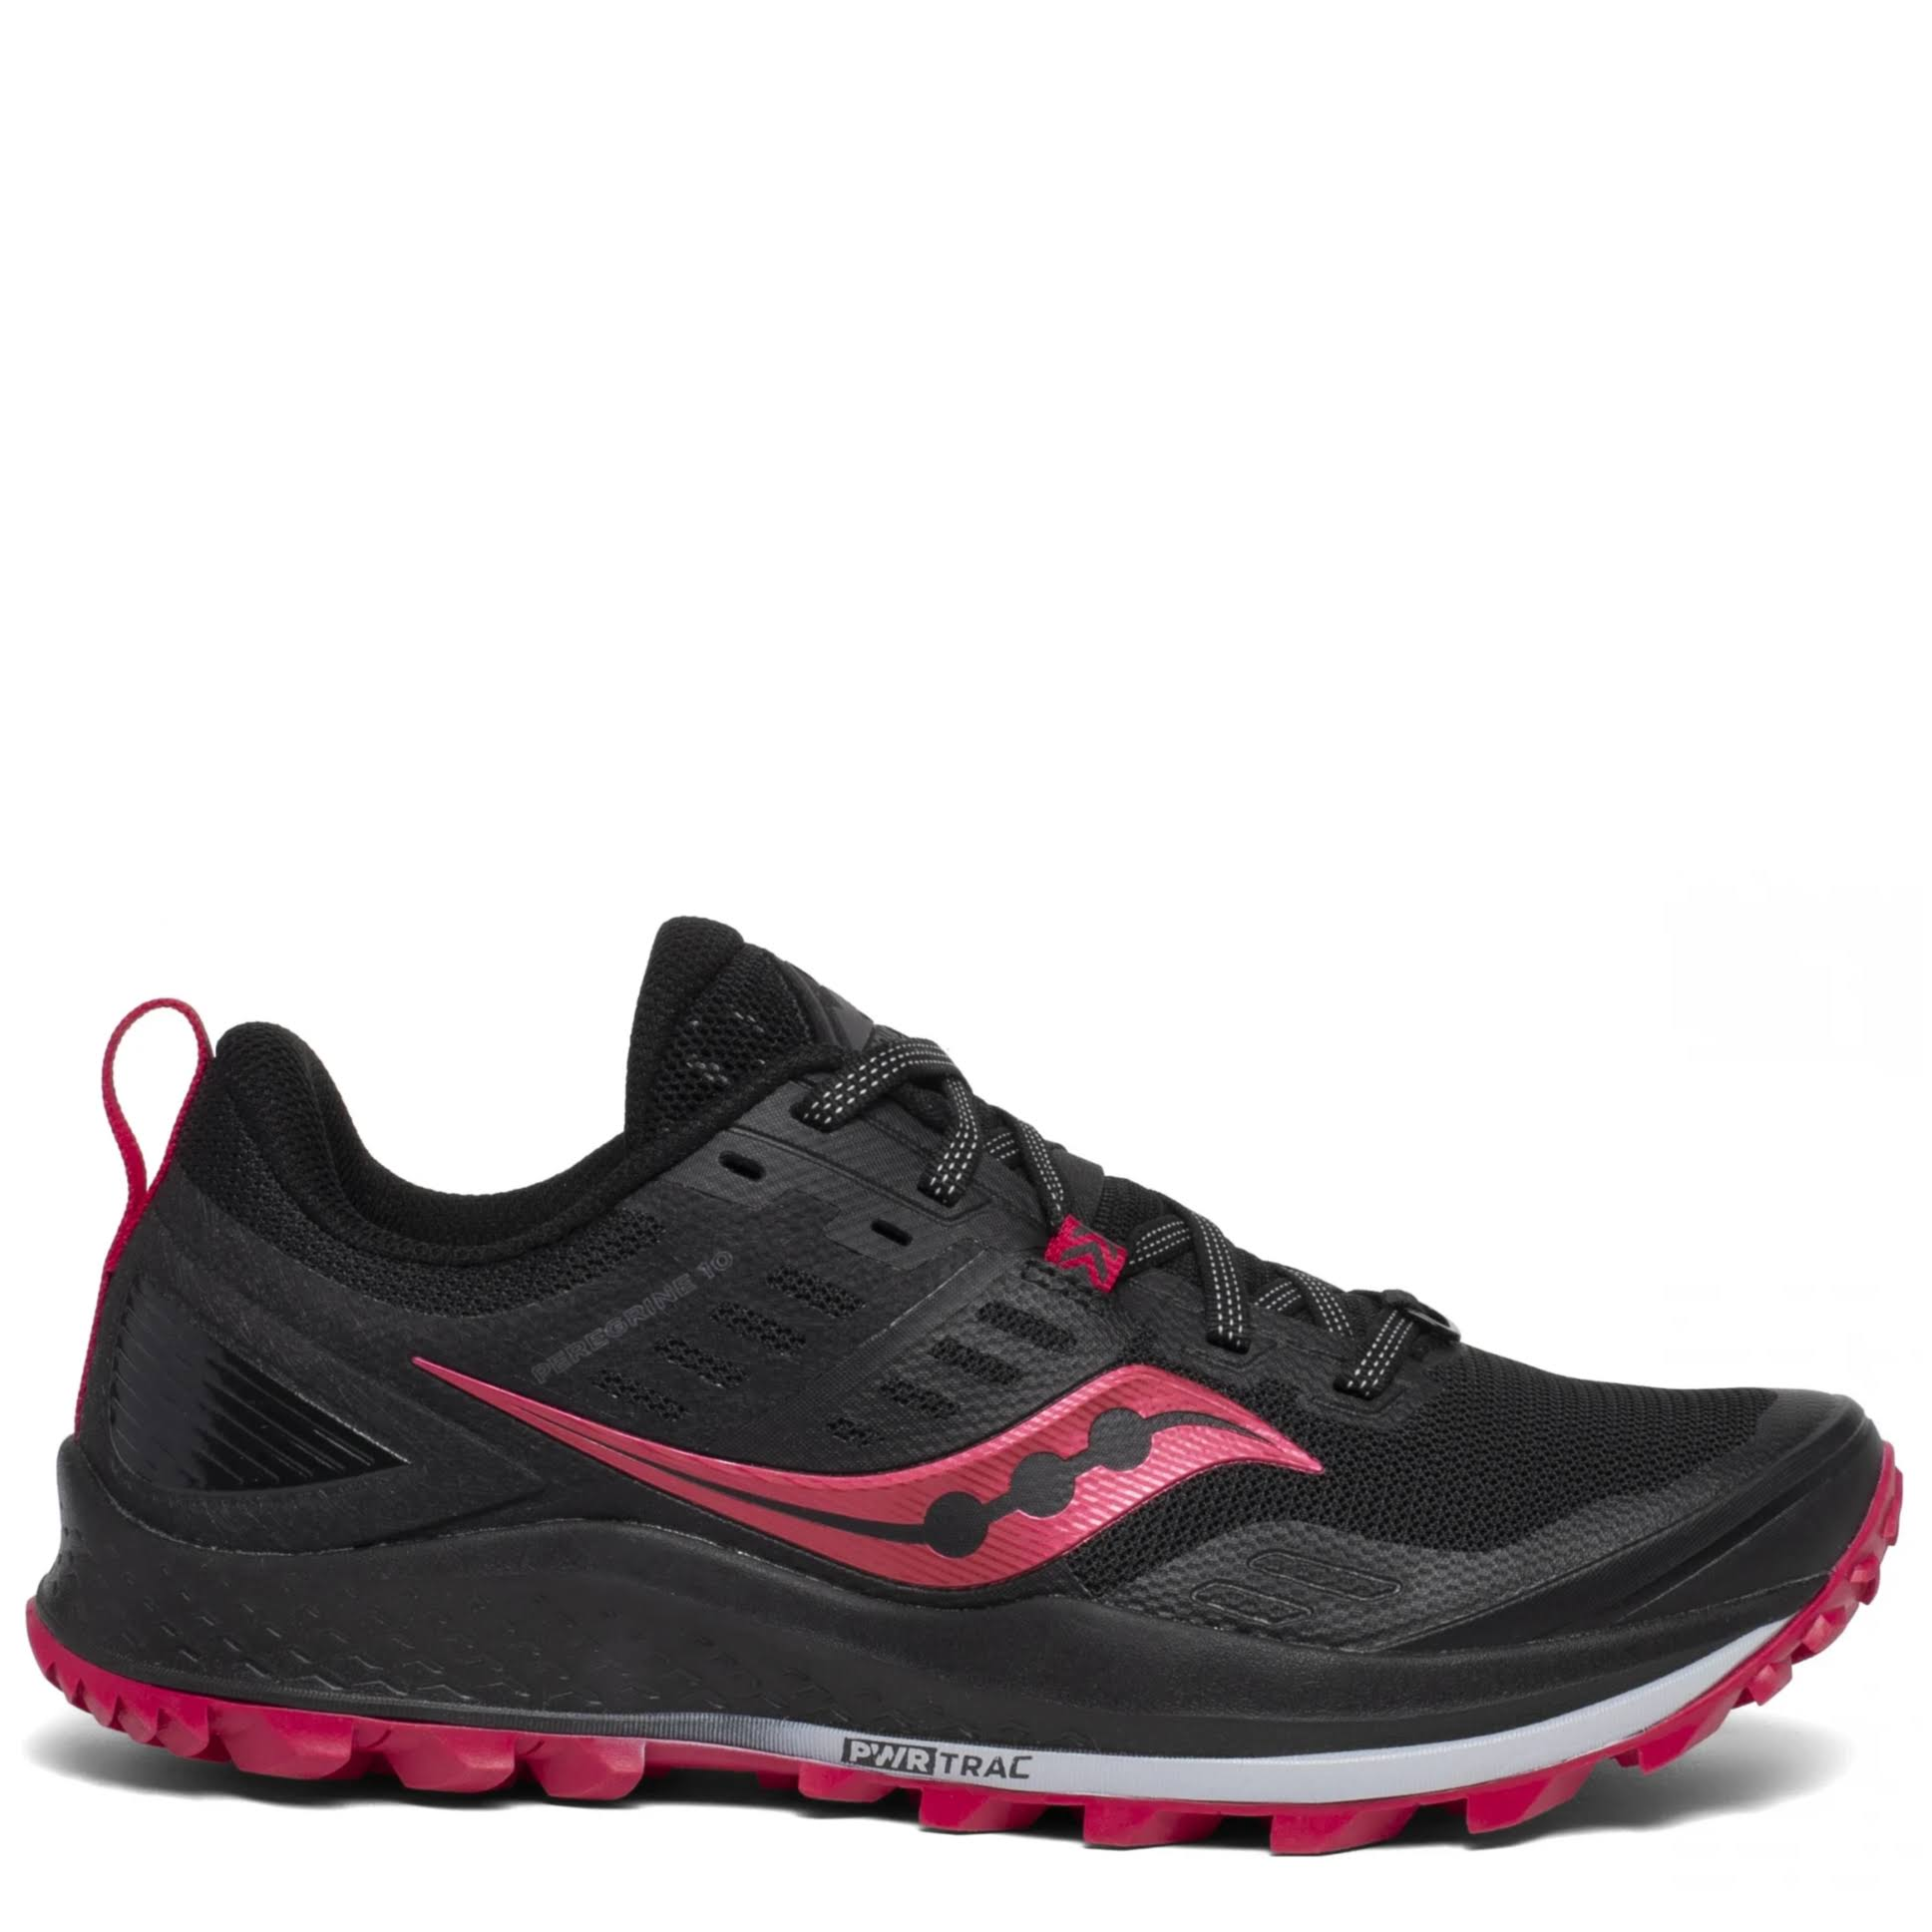 Saucony Peregrine 10 Women's Trail Running Shoes - Black - 9